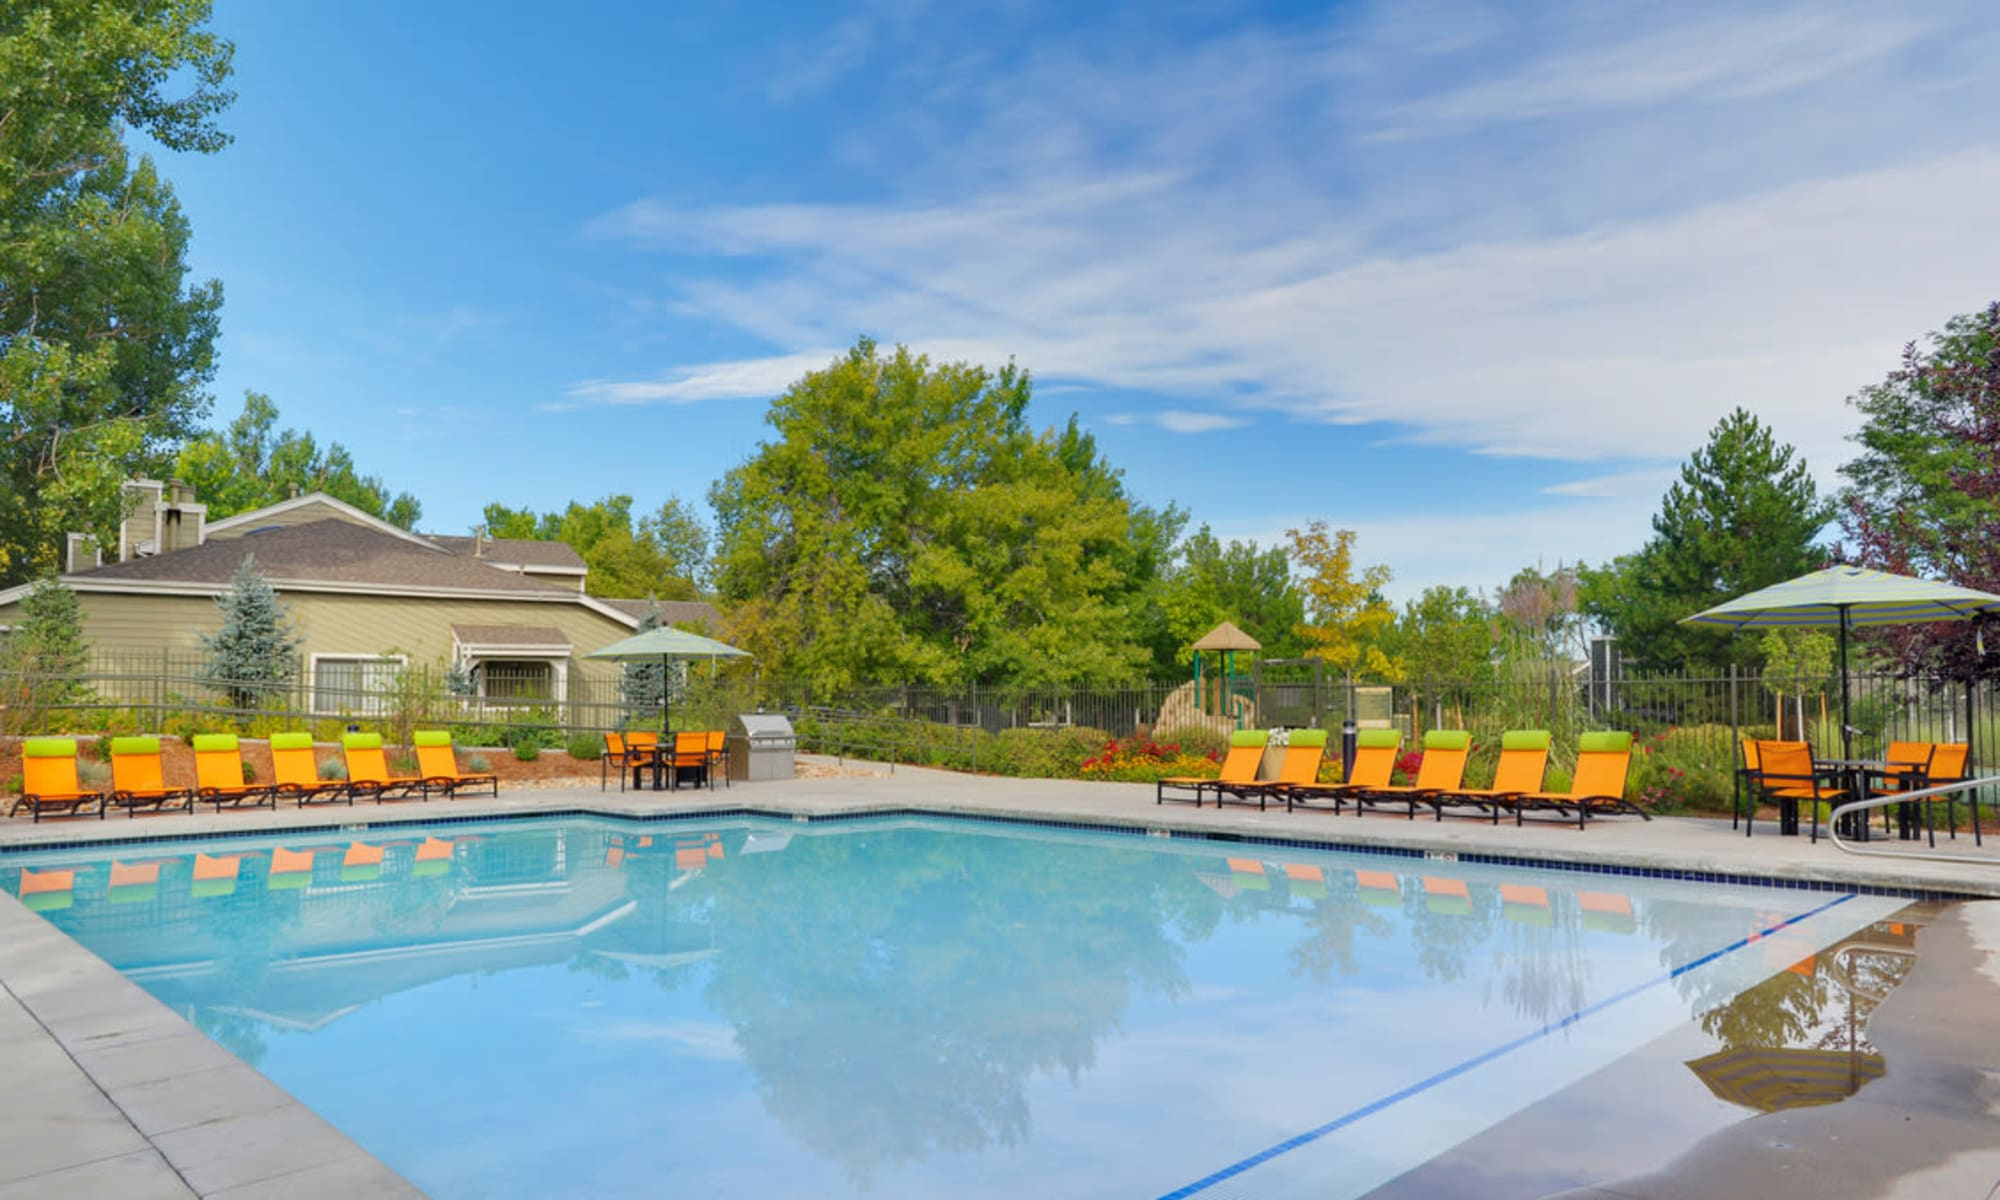 Apartments at Environs Residential Rental Community in Westminster, Colorado